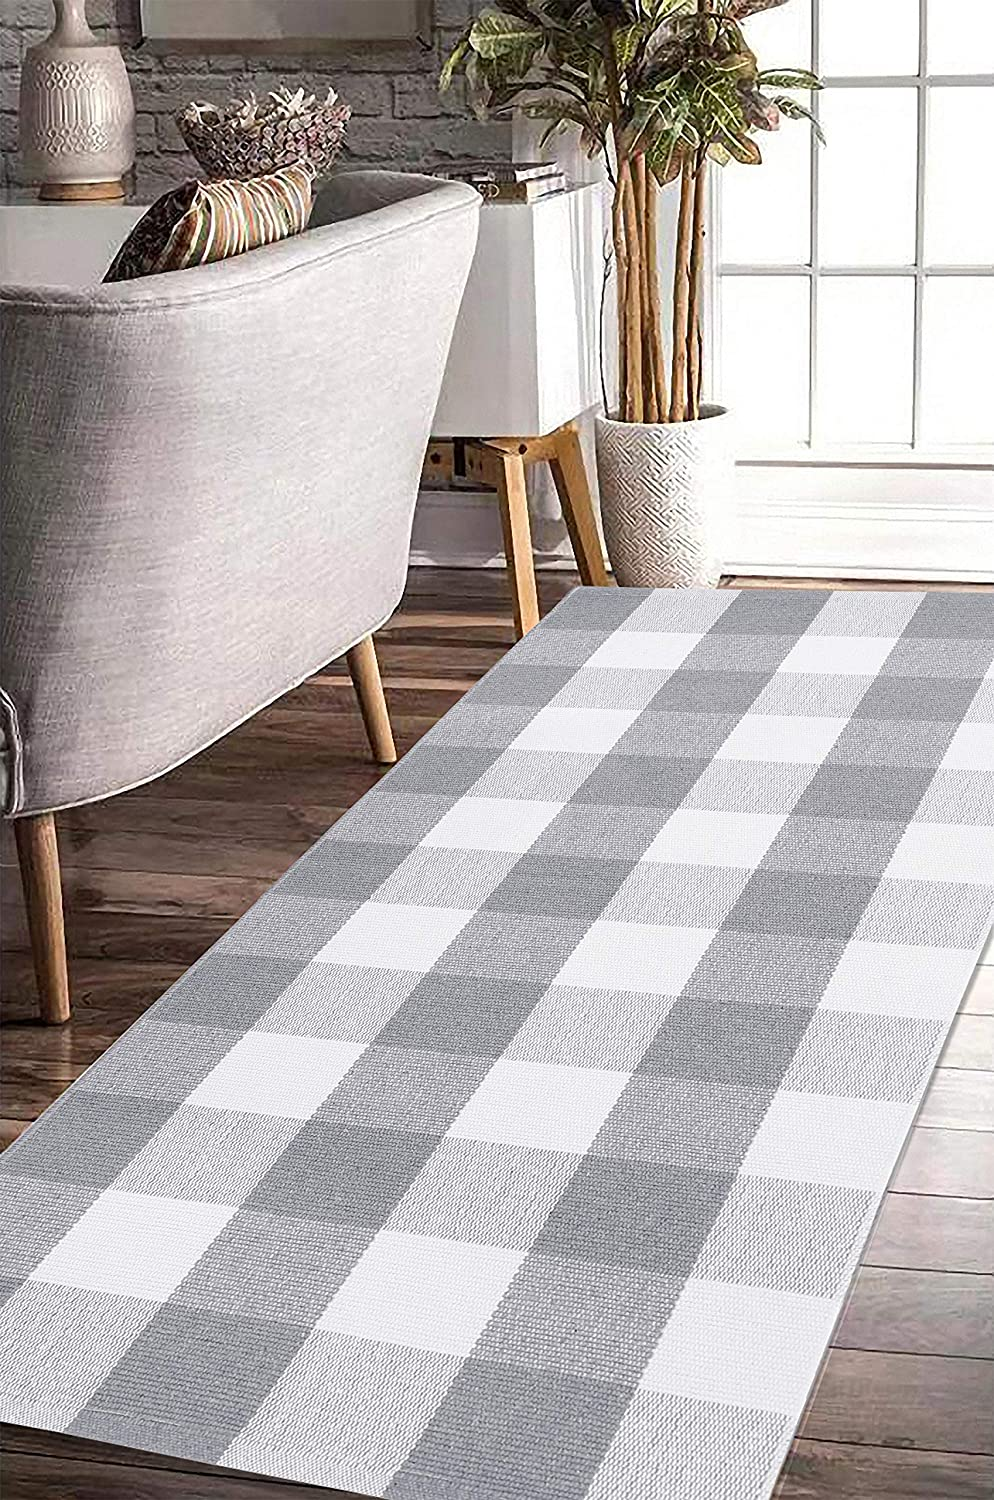 """EARTHALL Buffalo Plaid Rug Grey and White Rug Cotton, Hand-Woven Buffalo Check Rug Runner, Hallway Runner, Washable Plaid Outdoor Rug Entryway/Front Porch/Kitchen/Bathroom/Bedroom (23.6""""x51.2"""")"""